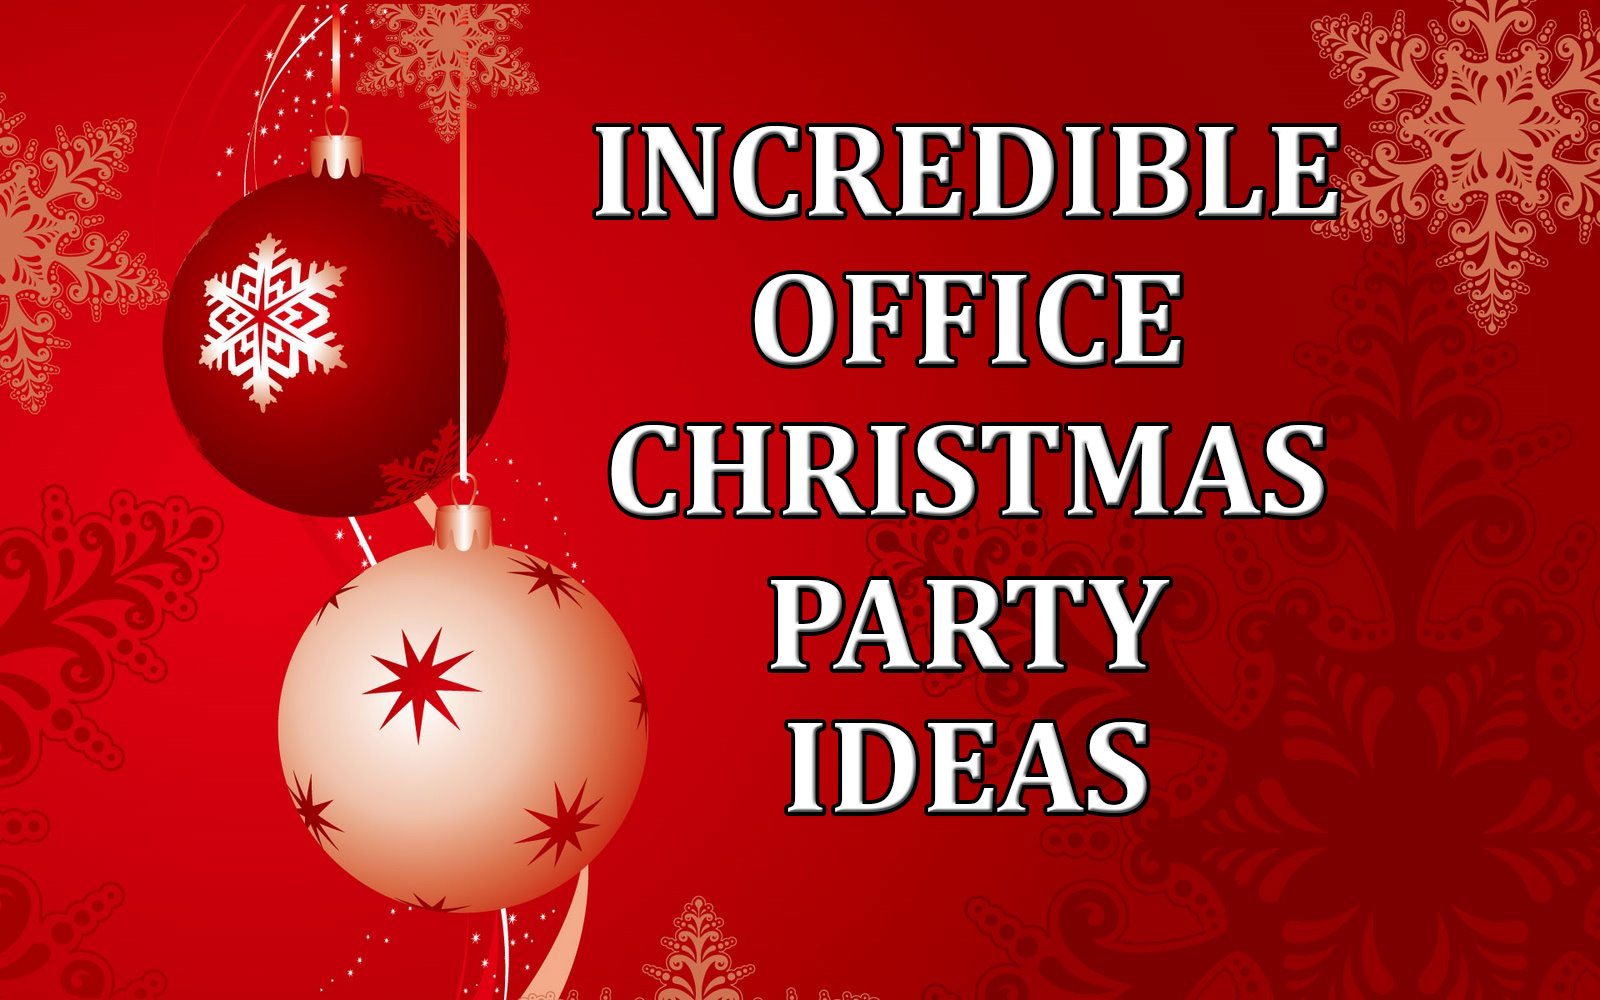 Ideas For Company Christmas Party  Incredible fice Christmas Party Ideas edy Ventriloquist